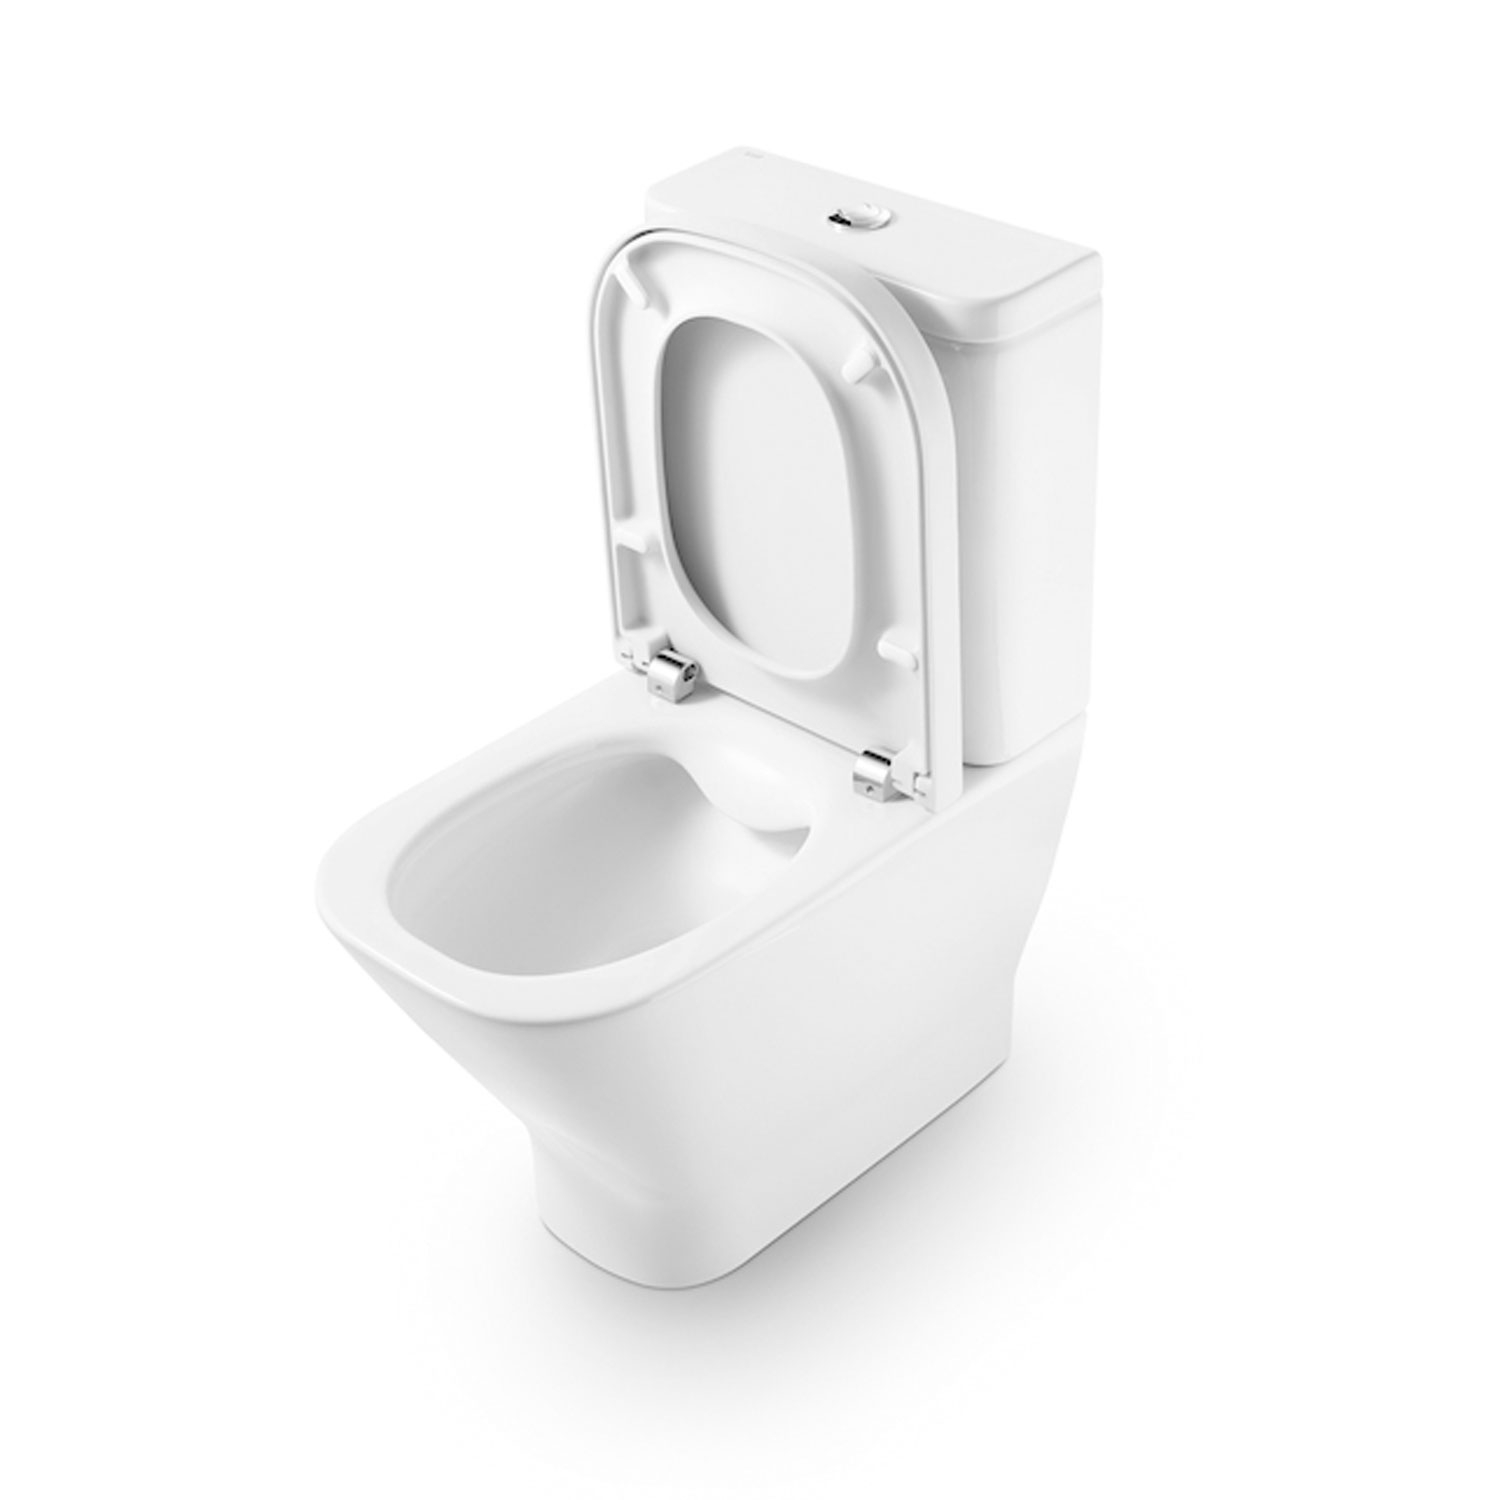 Roca The Gap Cleanrim Close Coupled Toilet with Dual Outlet Push Button Cistern, Soft Close Seat